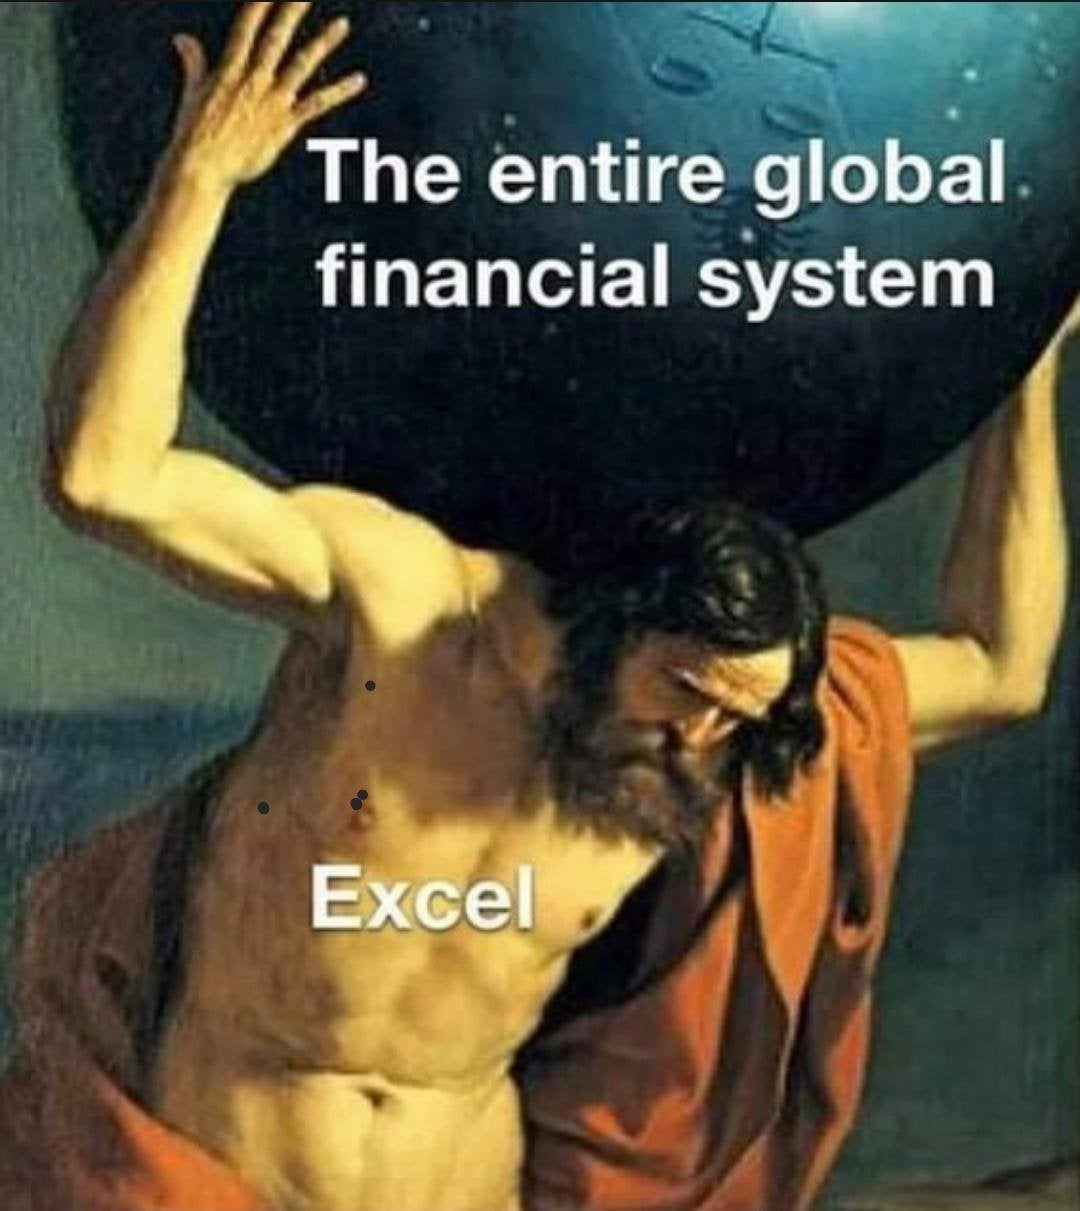 Excel holding up the entire global financial system meme